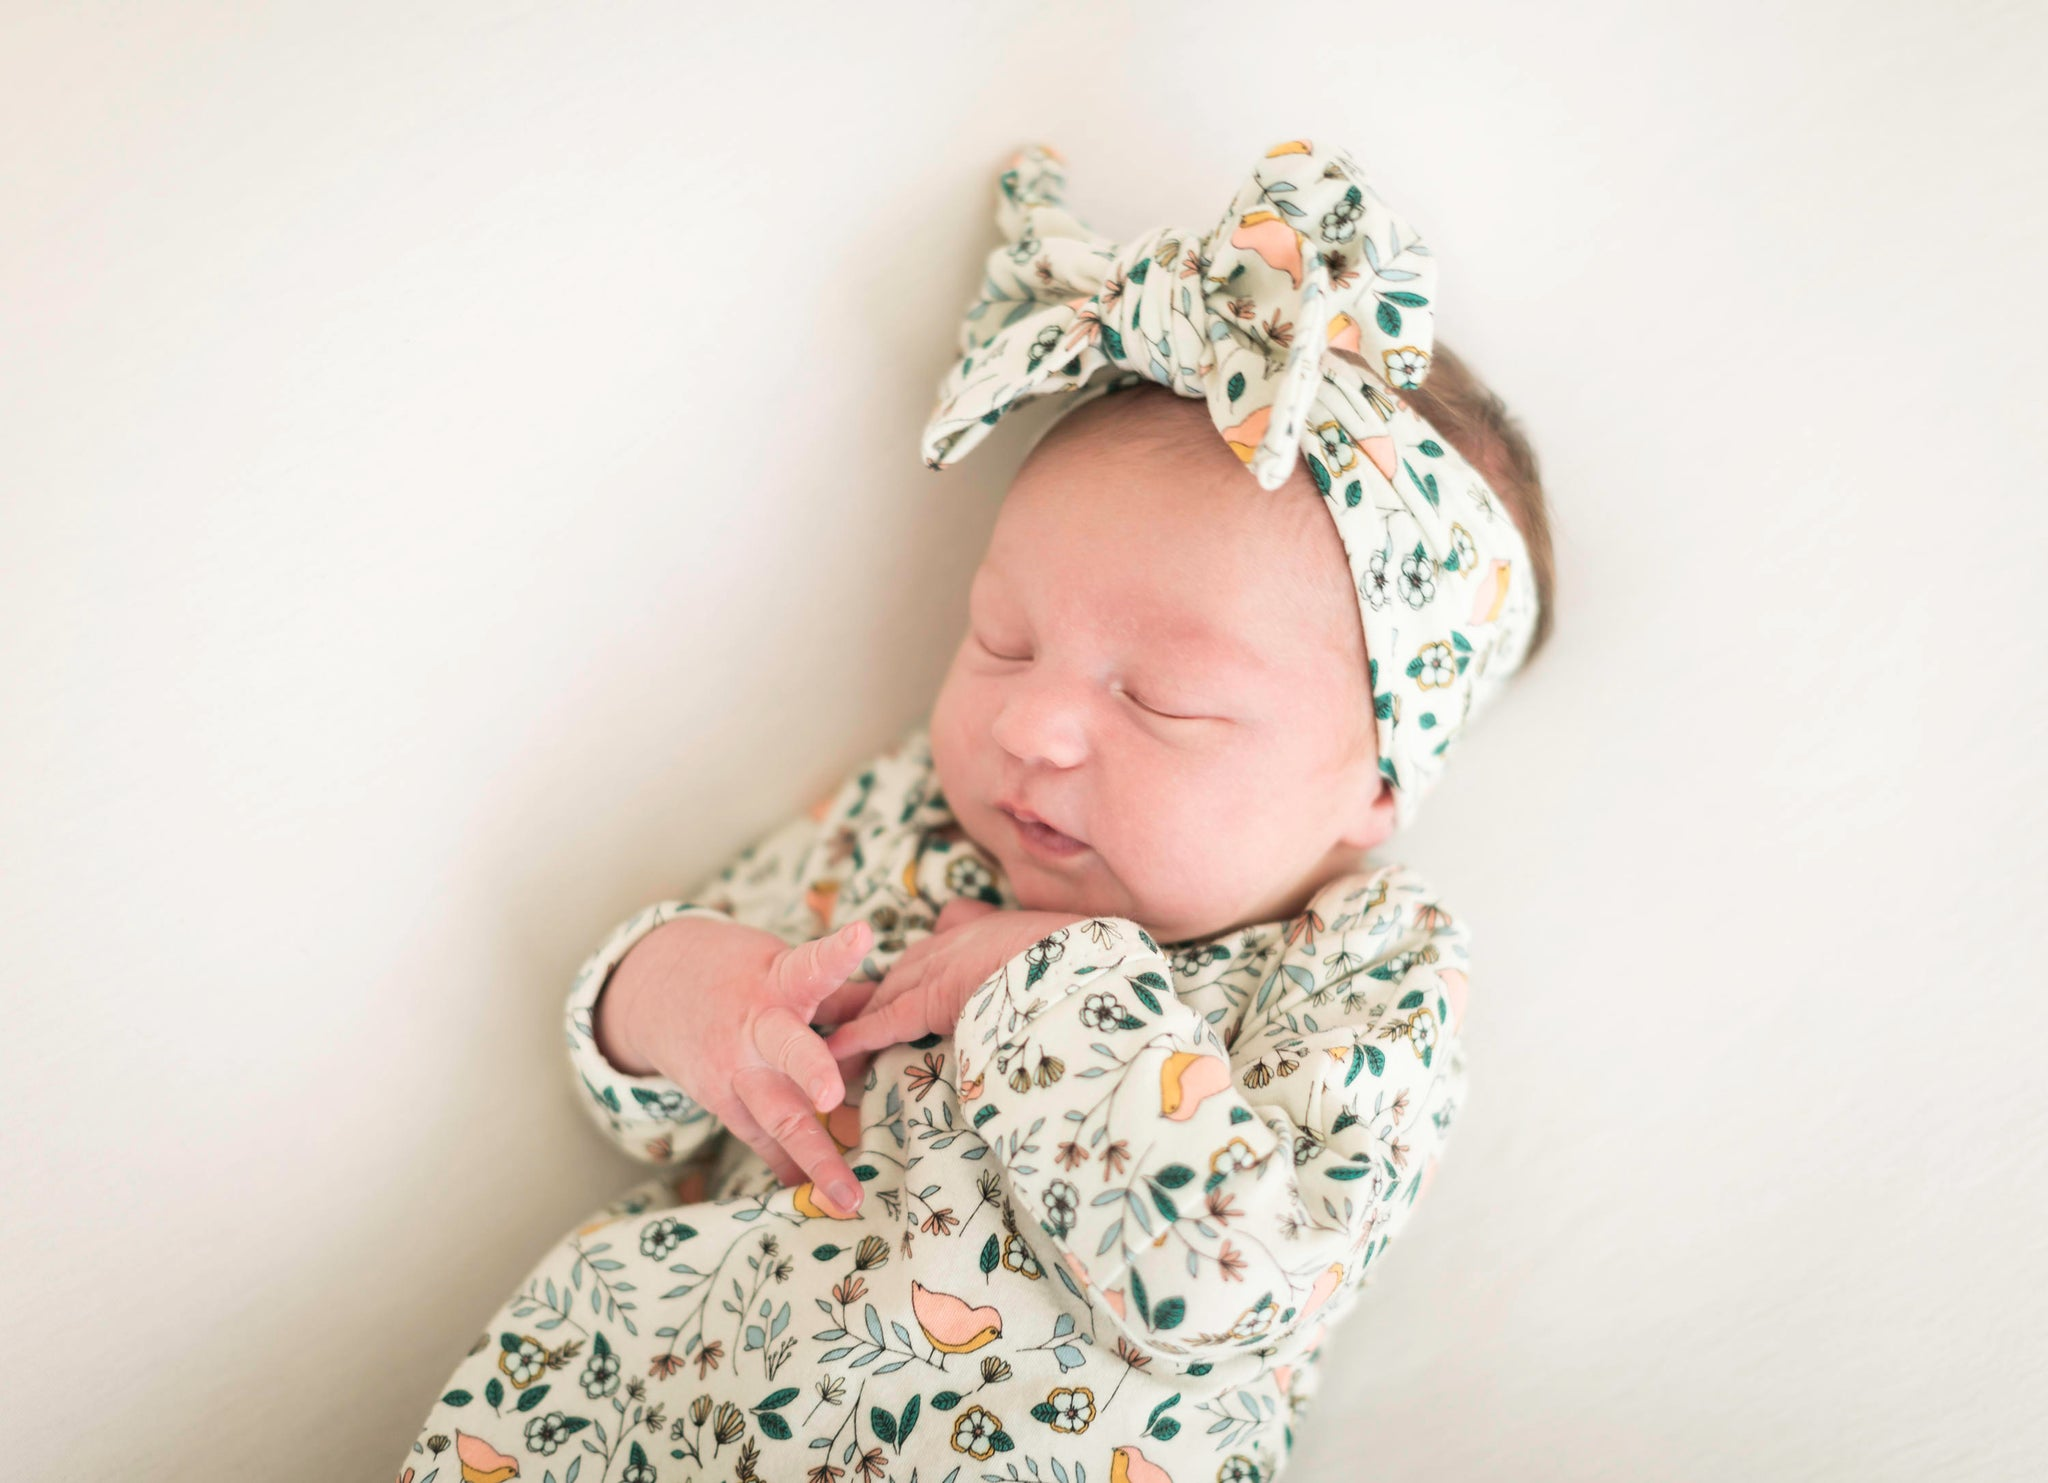 sleeping-infant-newborn-photo-inspiration